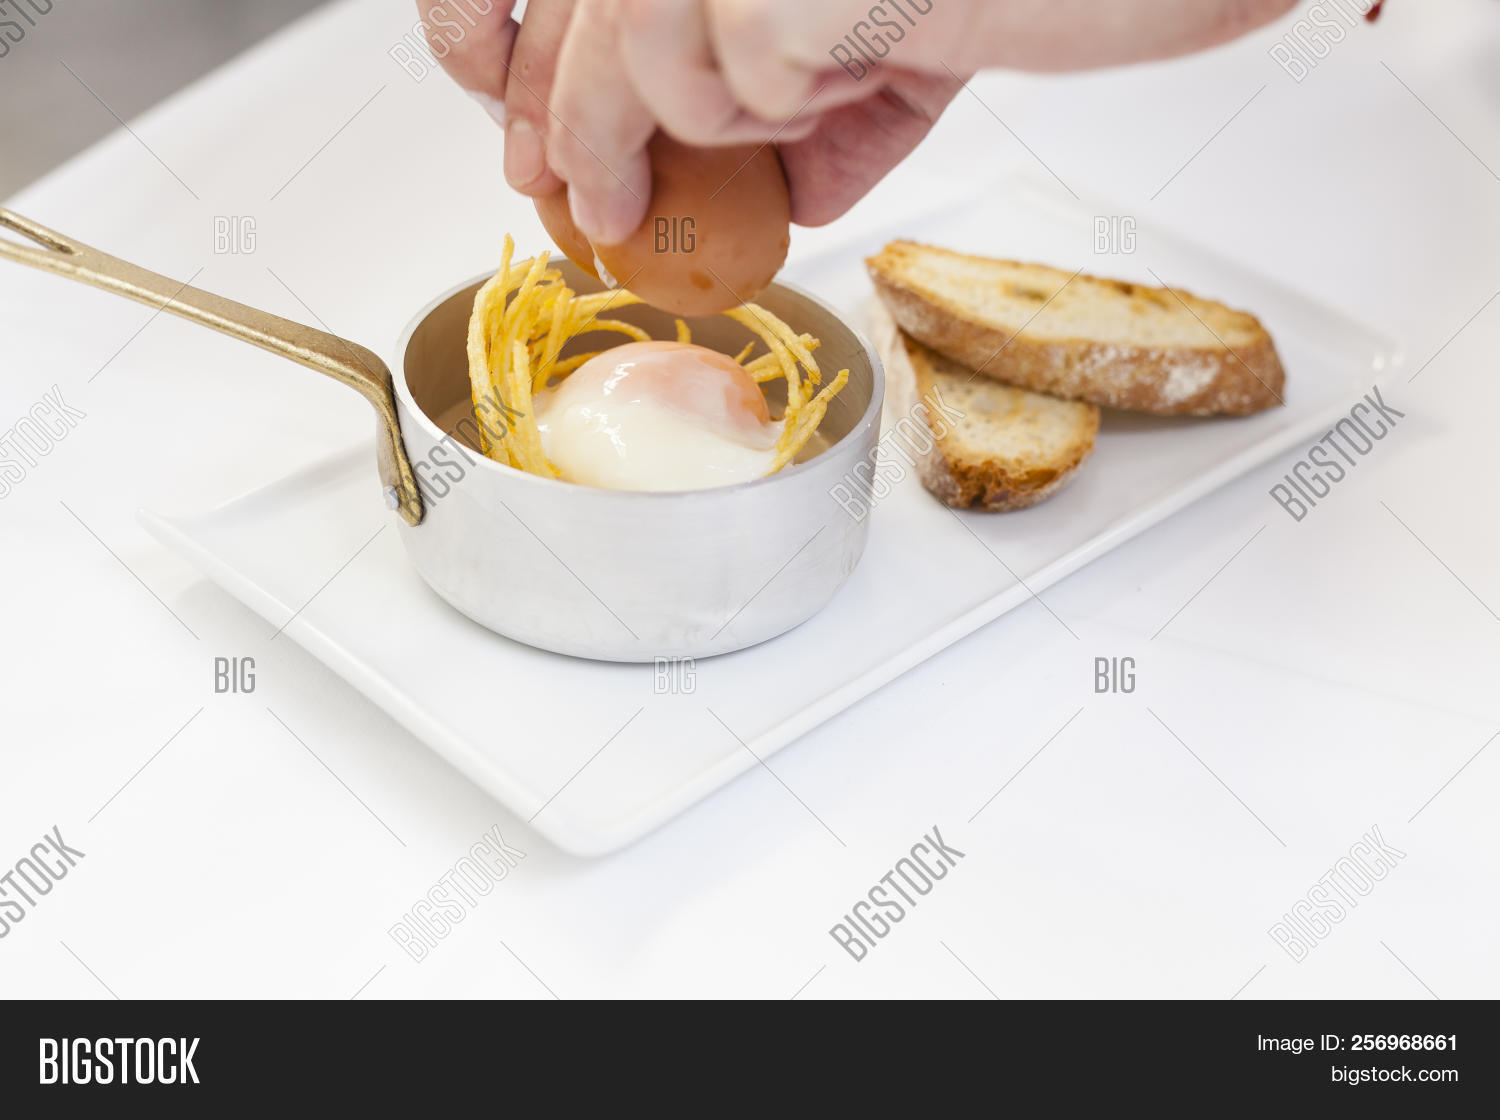 🔥 Chef´s Hand Breaking An Egg Plating A Gourmet Dish Consisting On